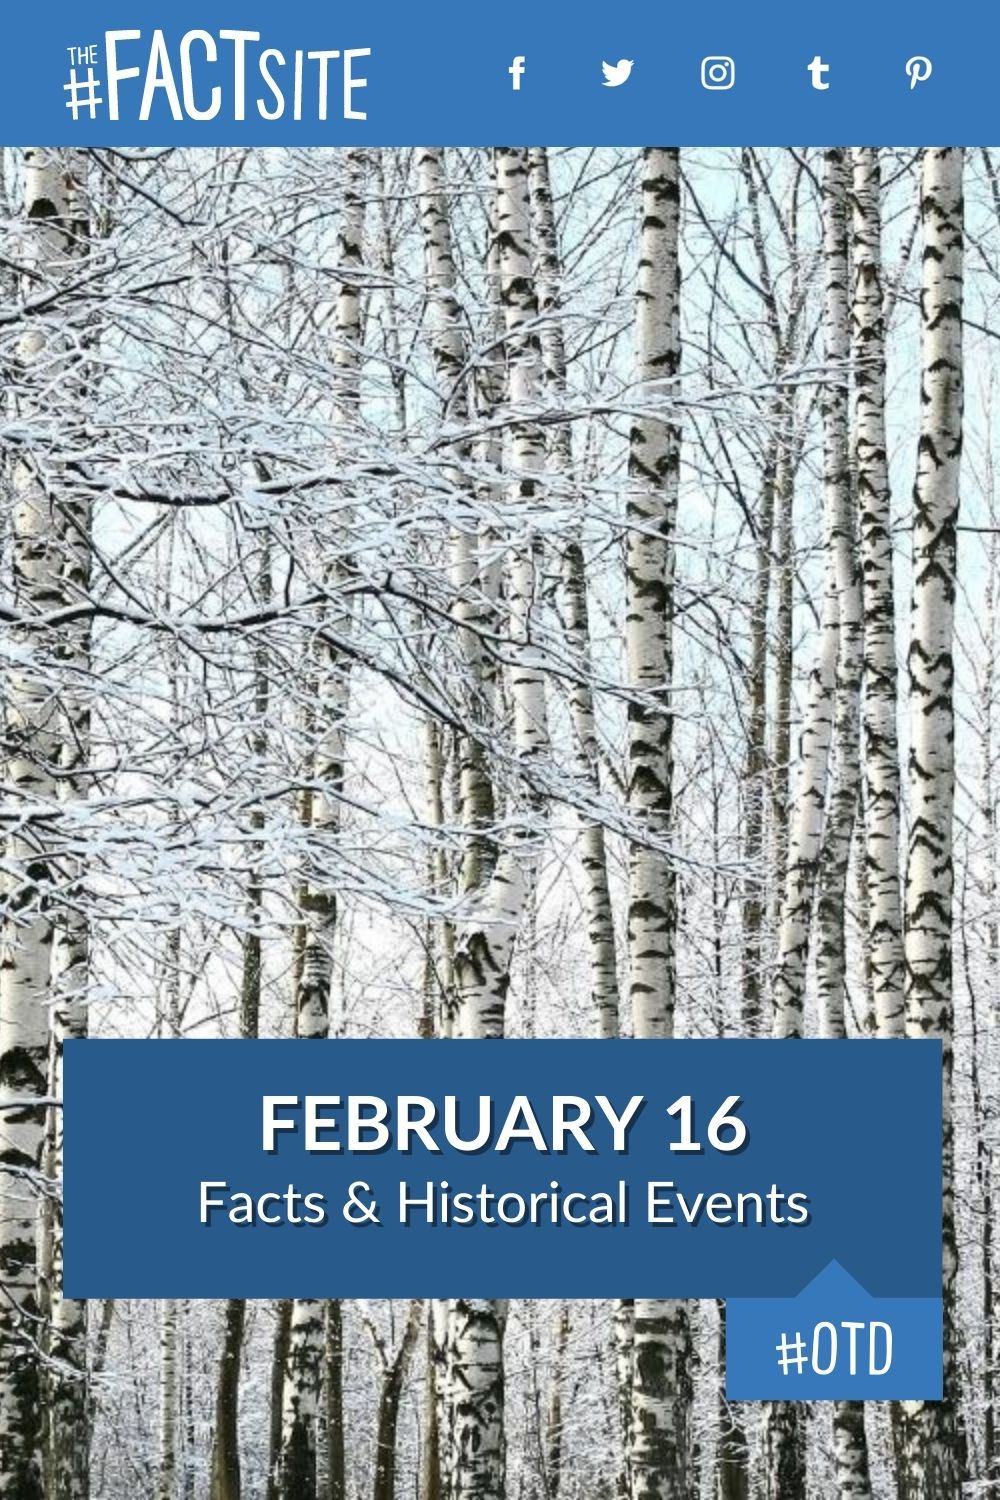 Facts & Historic Events That Happened on February 16